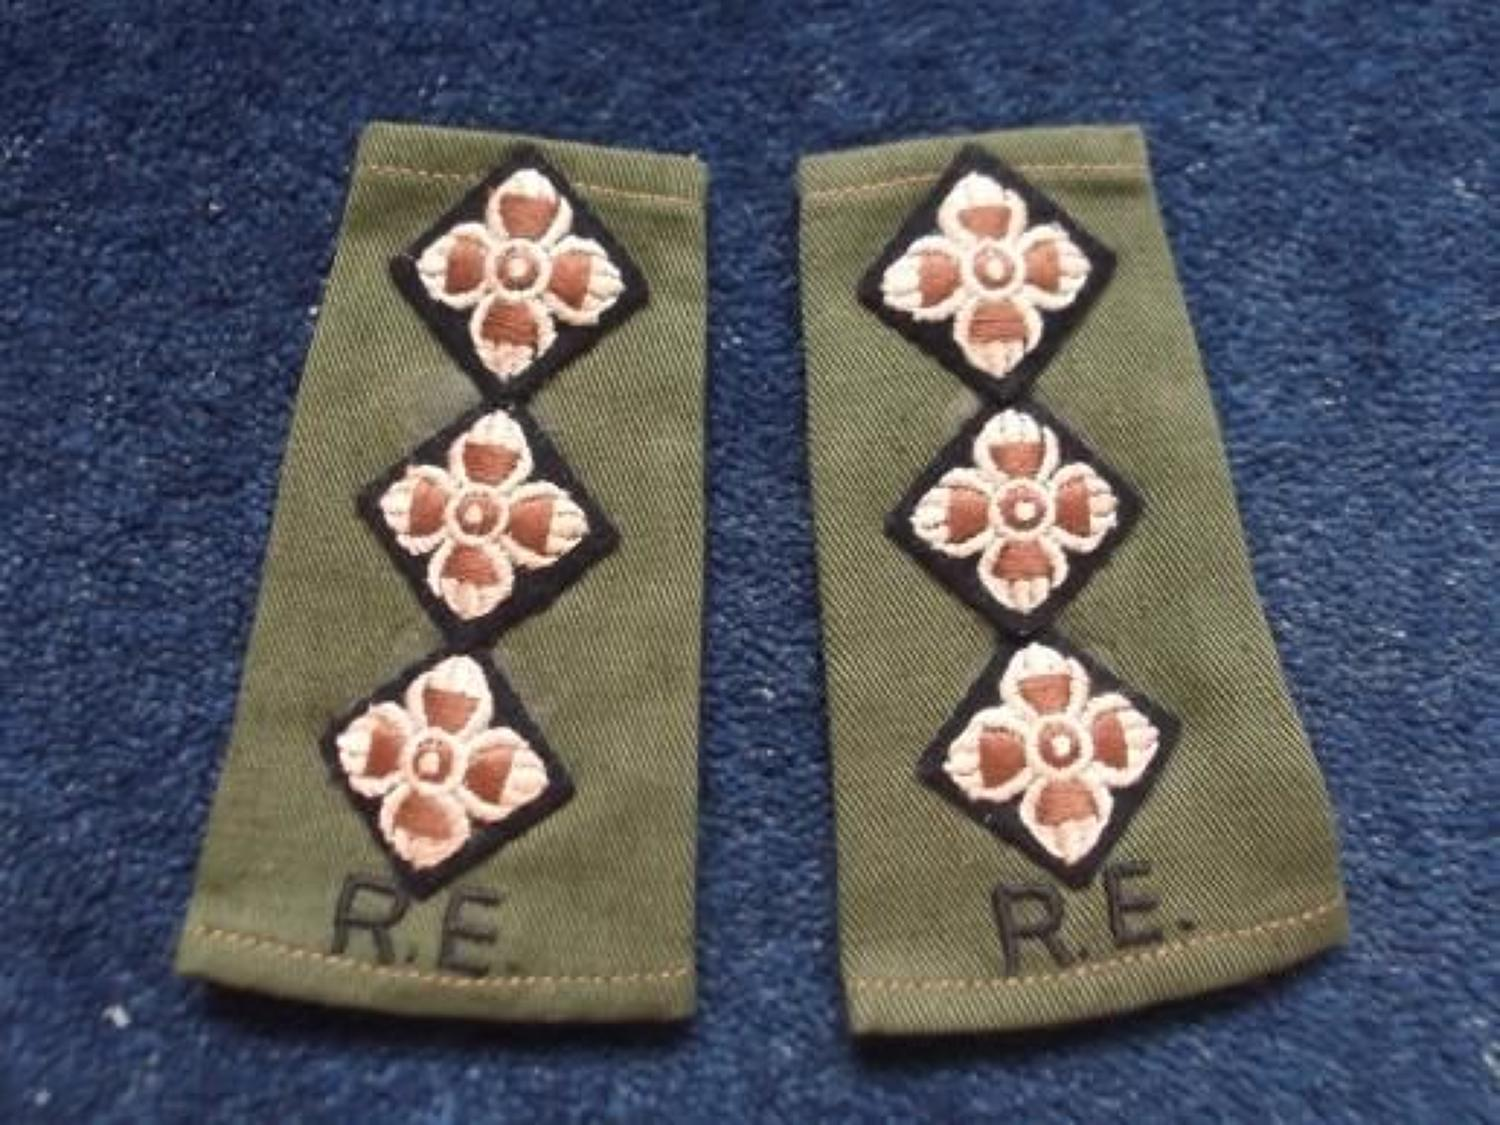 Slip-on Shoulder Rank. Three pips for Royal Engineer Captain.